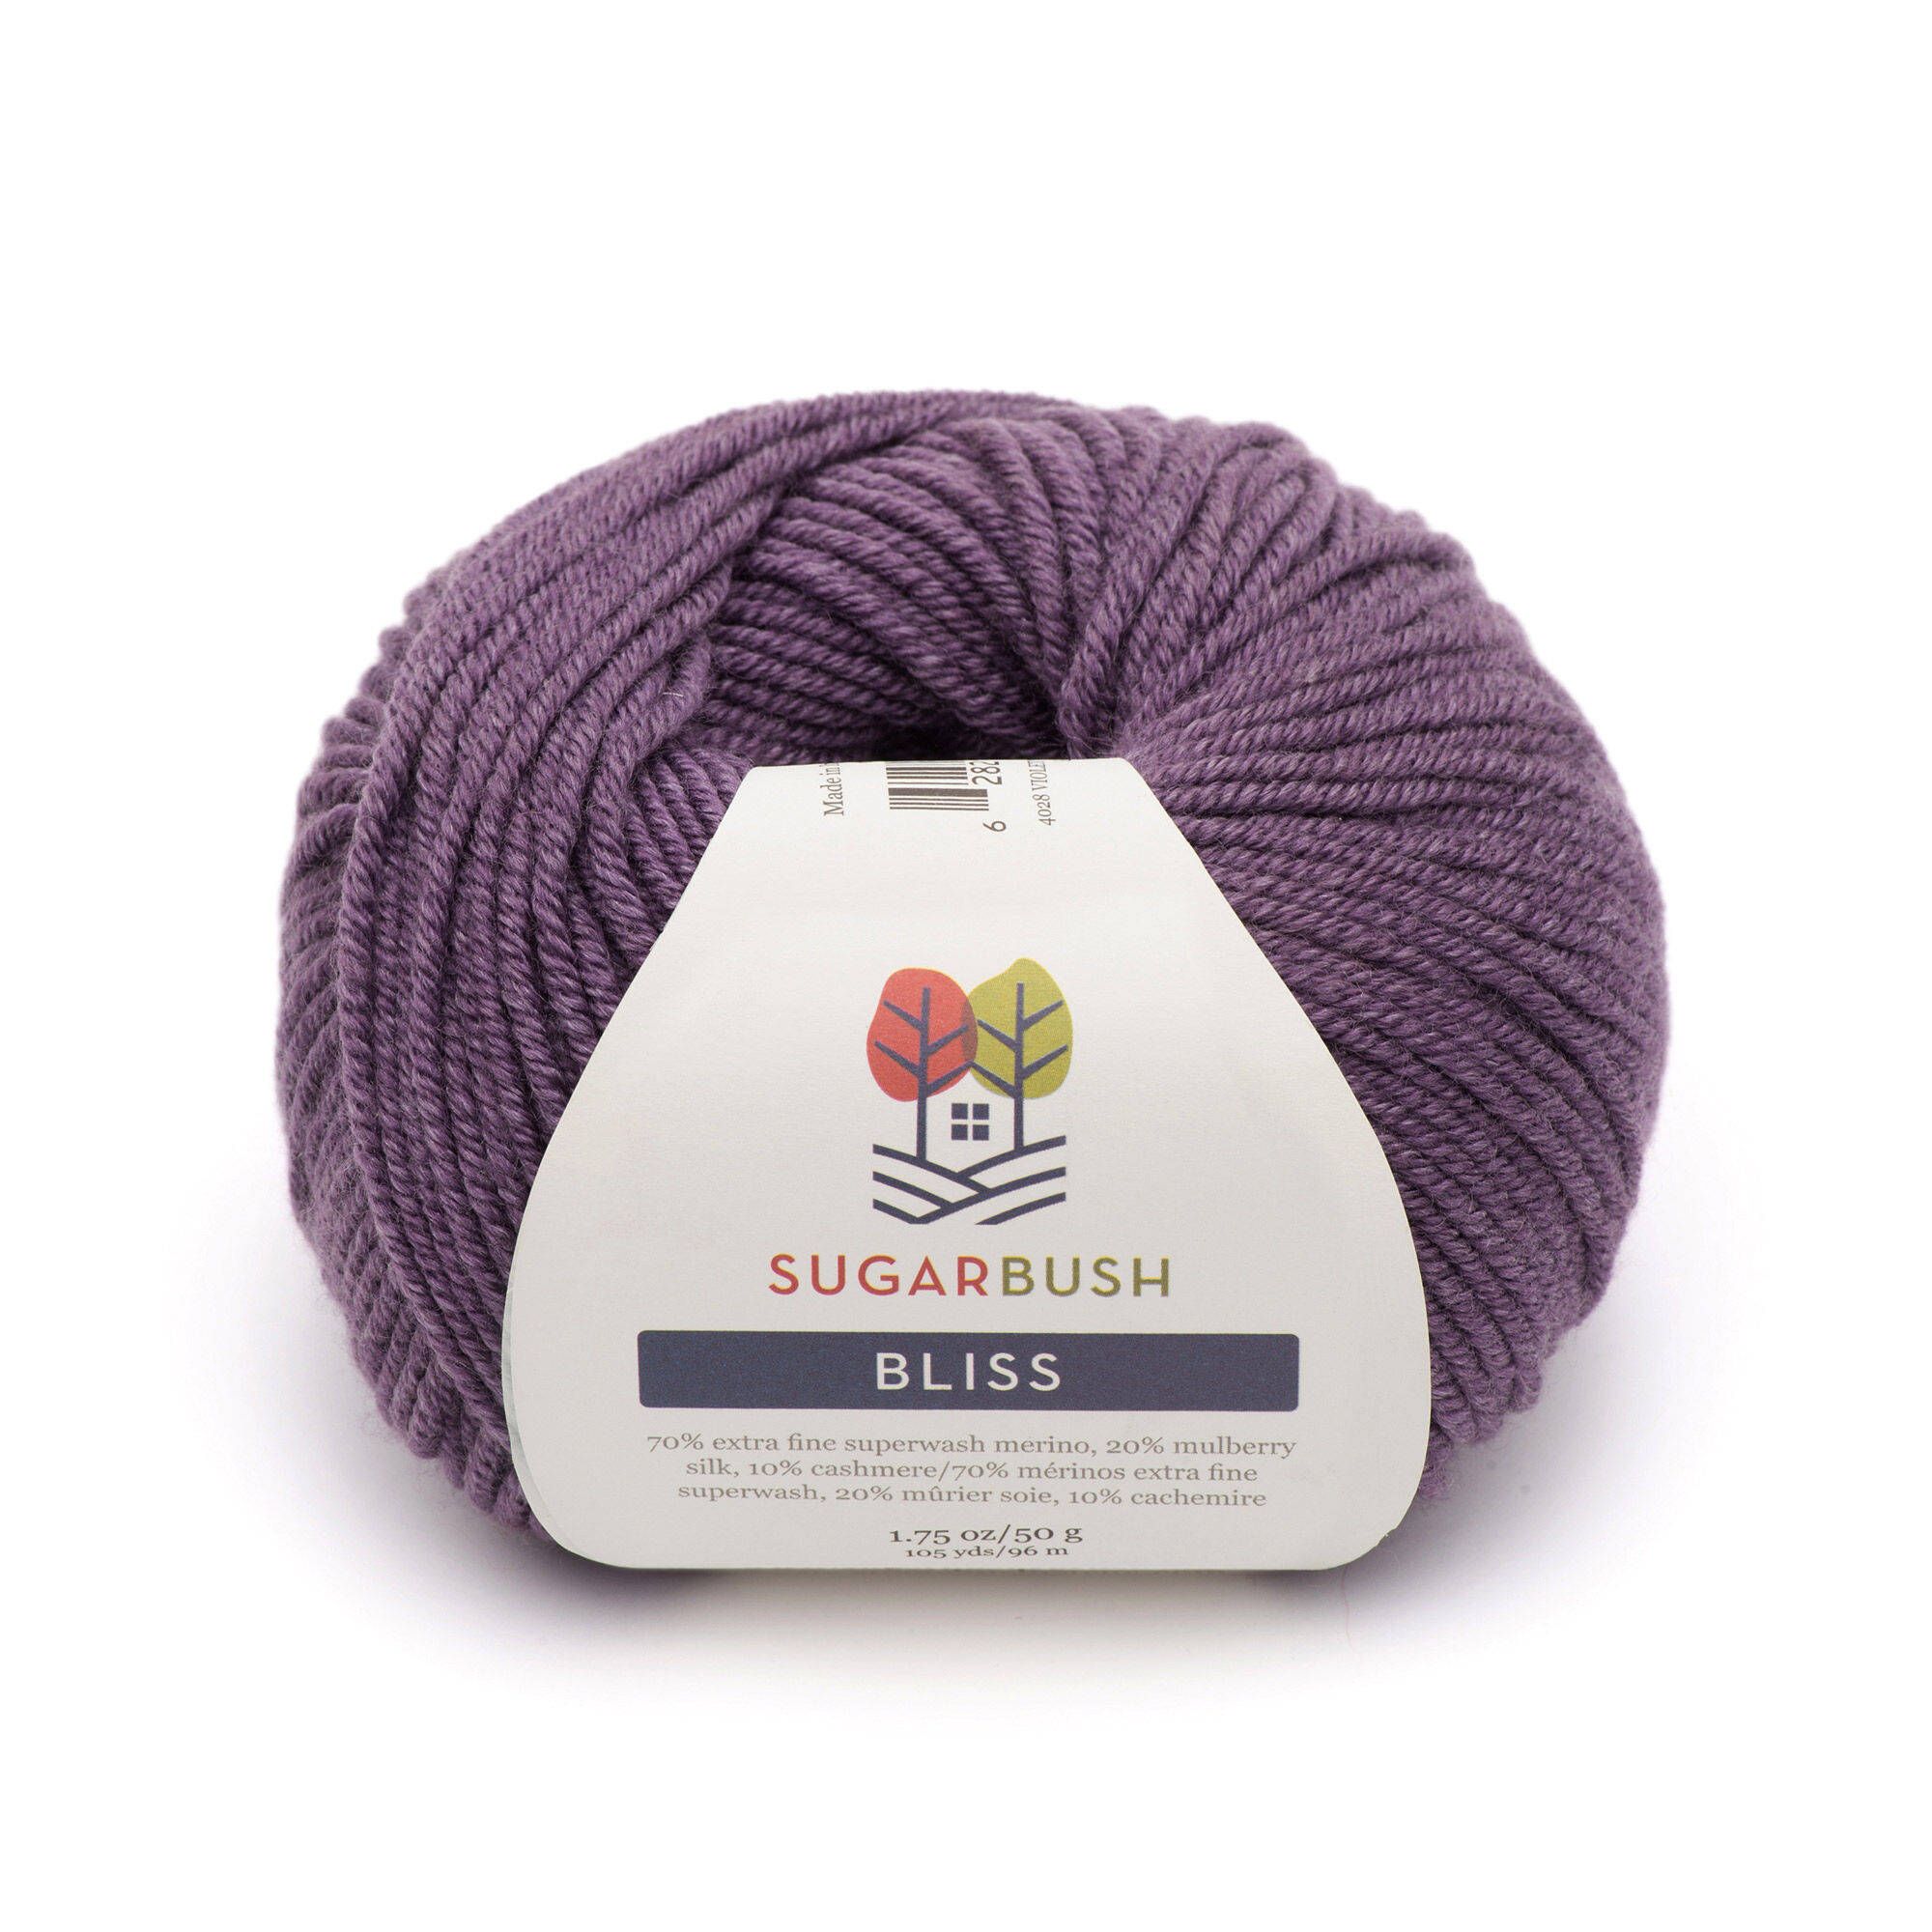 A donut ball of violet yarn with label